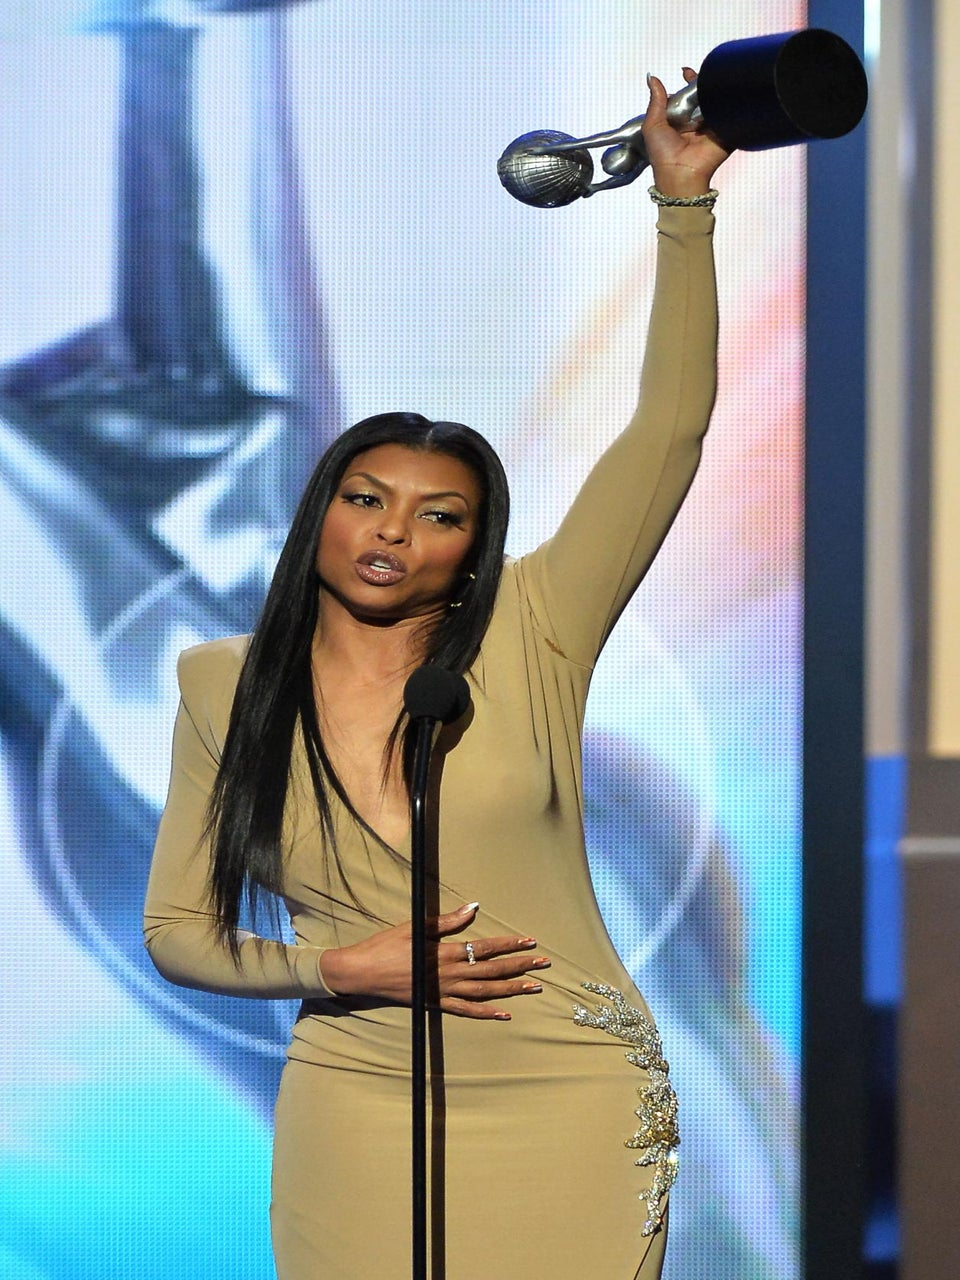 See the Complete List of Winners from the 2016 NAACP Image Awards